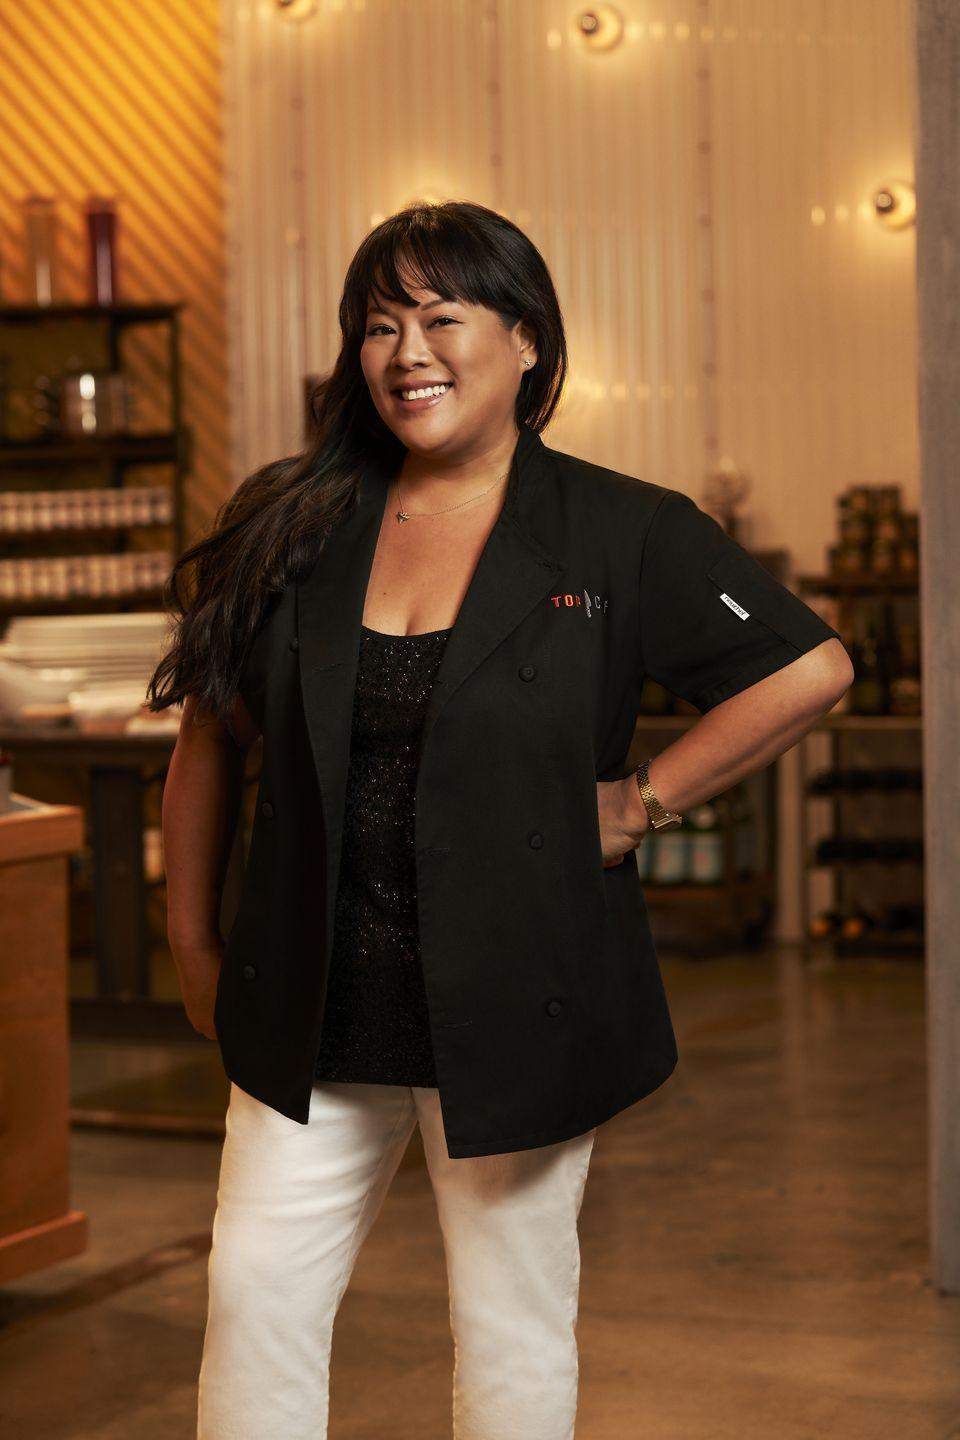 """<p>Contestant <a href=""""https://www.foodandwine.com/news/top-chef/season-15/lee-anne-wong-interview"""" rel=""""nofollow noopener"""" target=""""_blank"""" data-ylk=""""slk:Lee Anne Wong"""" class=""""link rapid-noclick-resp"""">Lee Anne Wong</a> went on to work as a culinary producer—coming up with challenges and time limits—for seasons two through seven. </p>"""